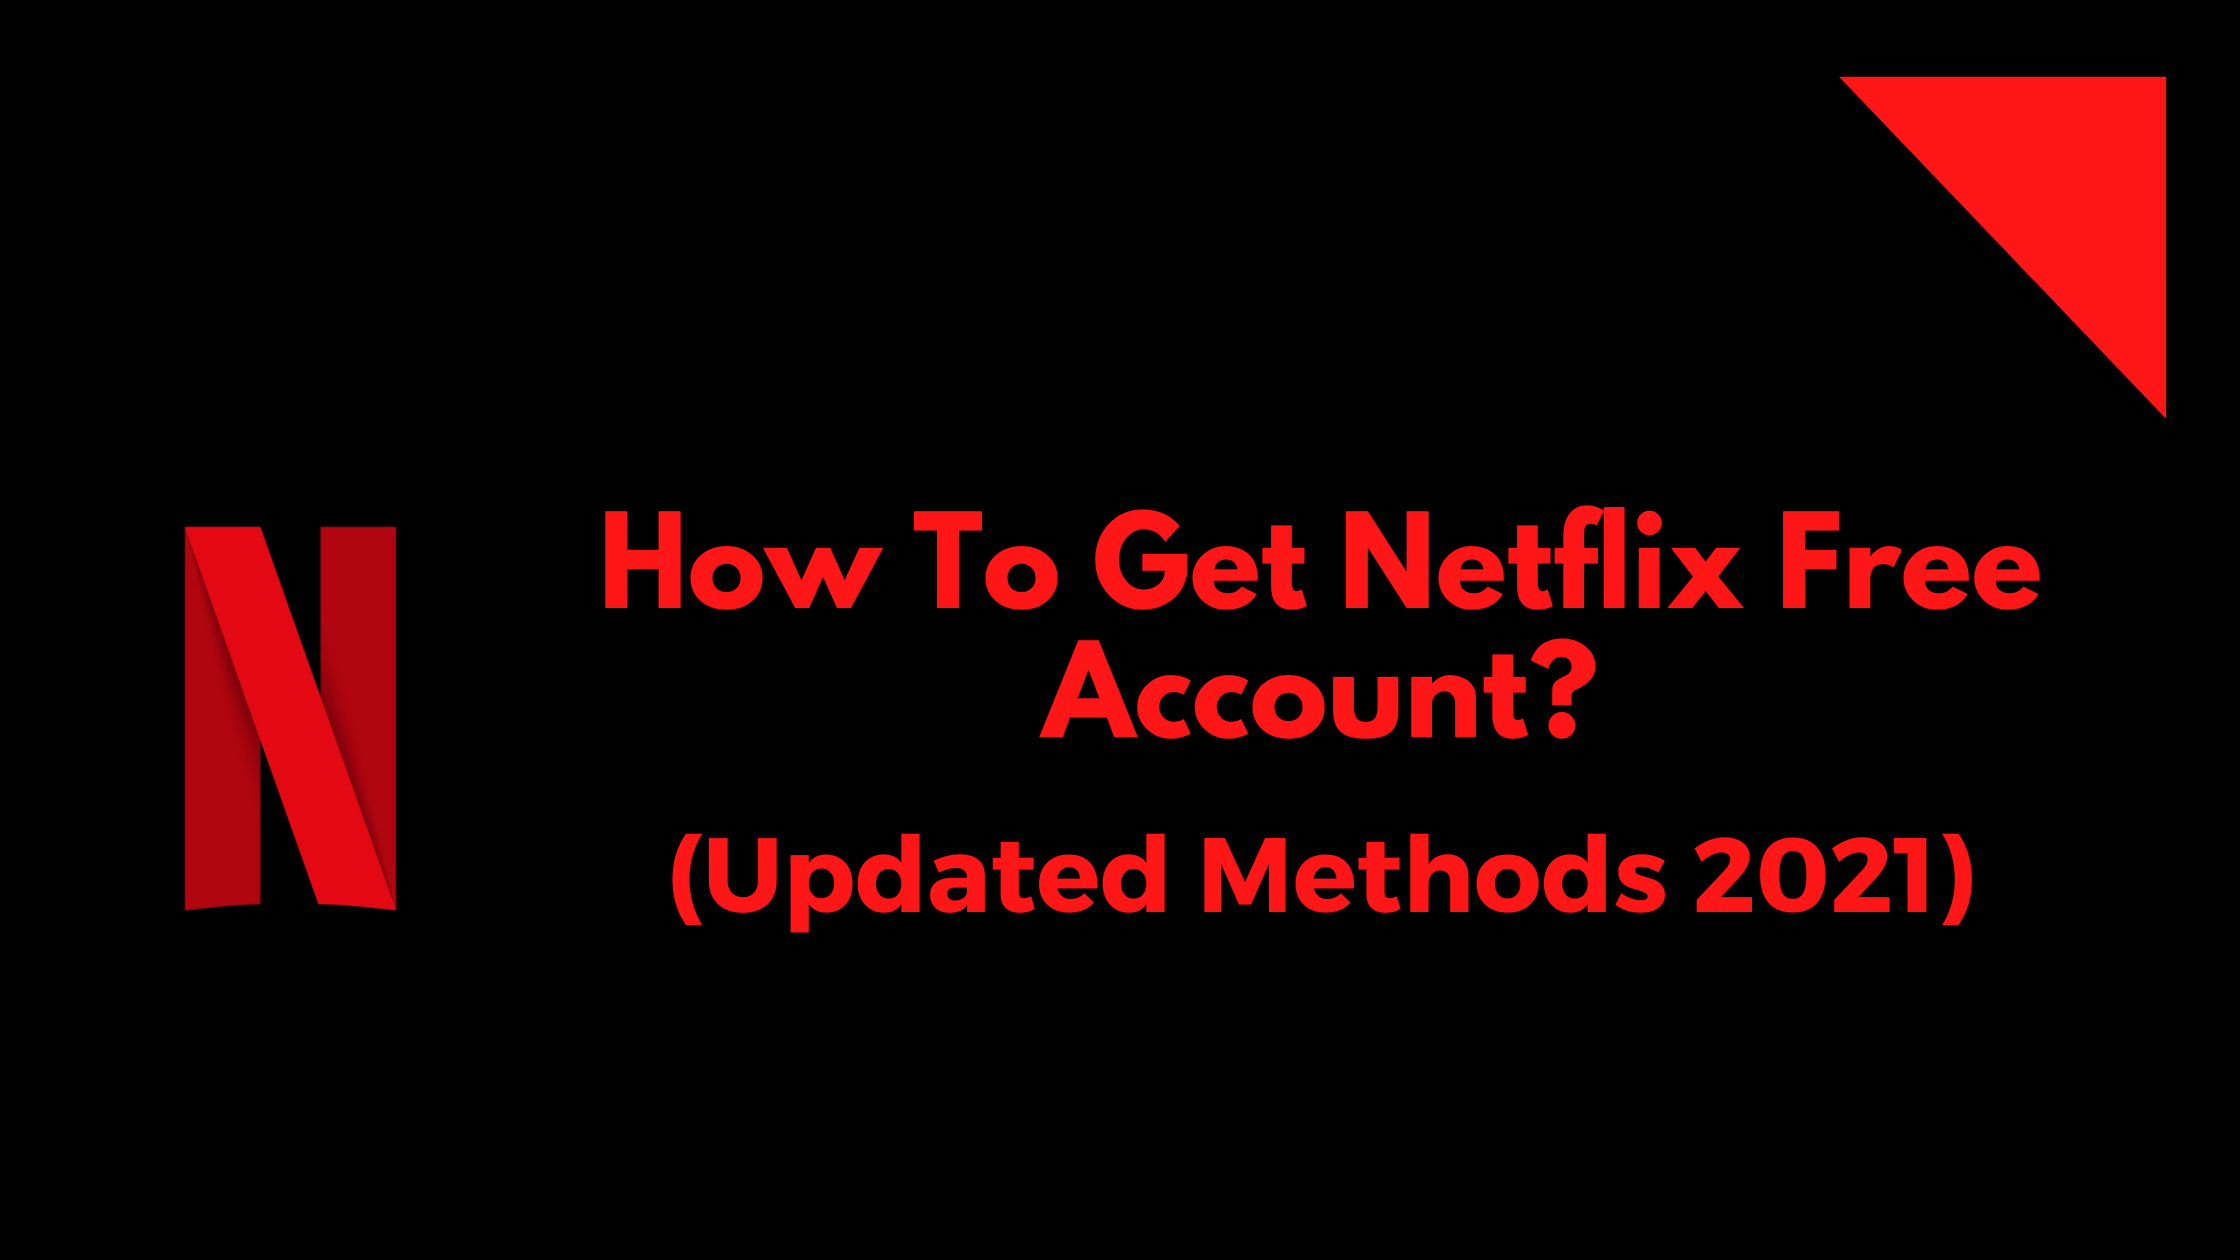 How To Get Netflix Free Account?